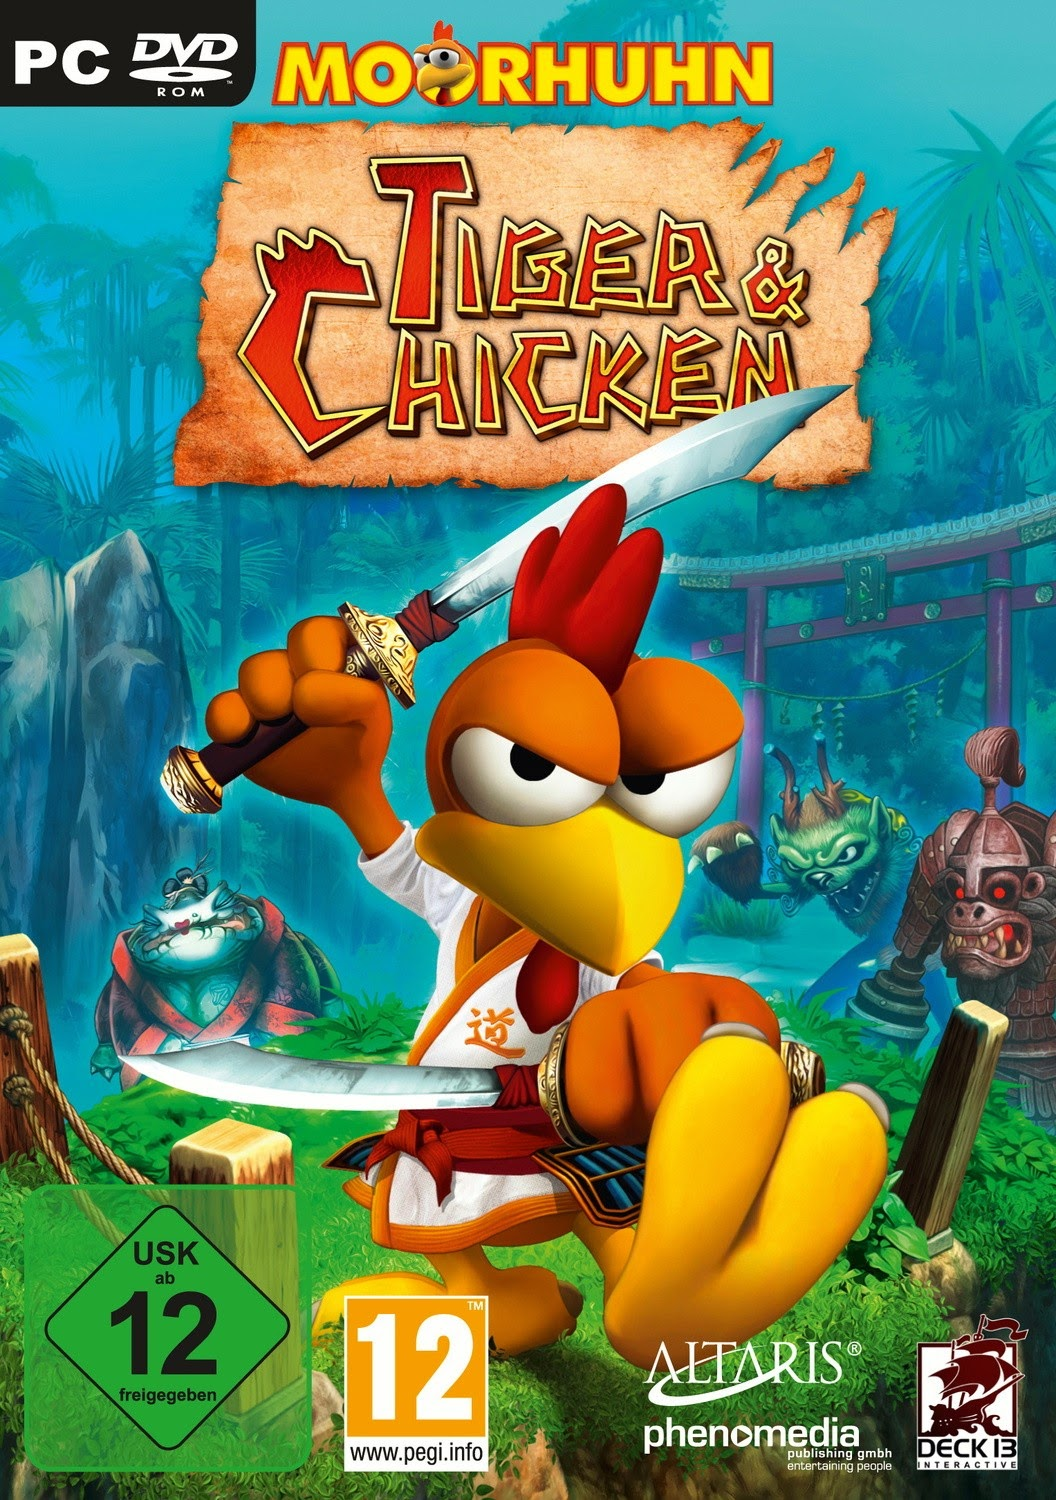 MOORHUHN TIGER AND CHICKEN PC GAME CRACK FULL DOWNLOAD